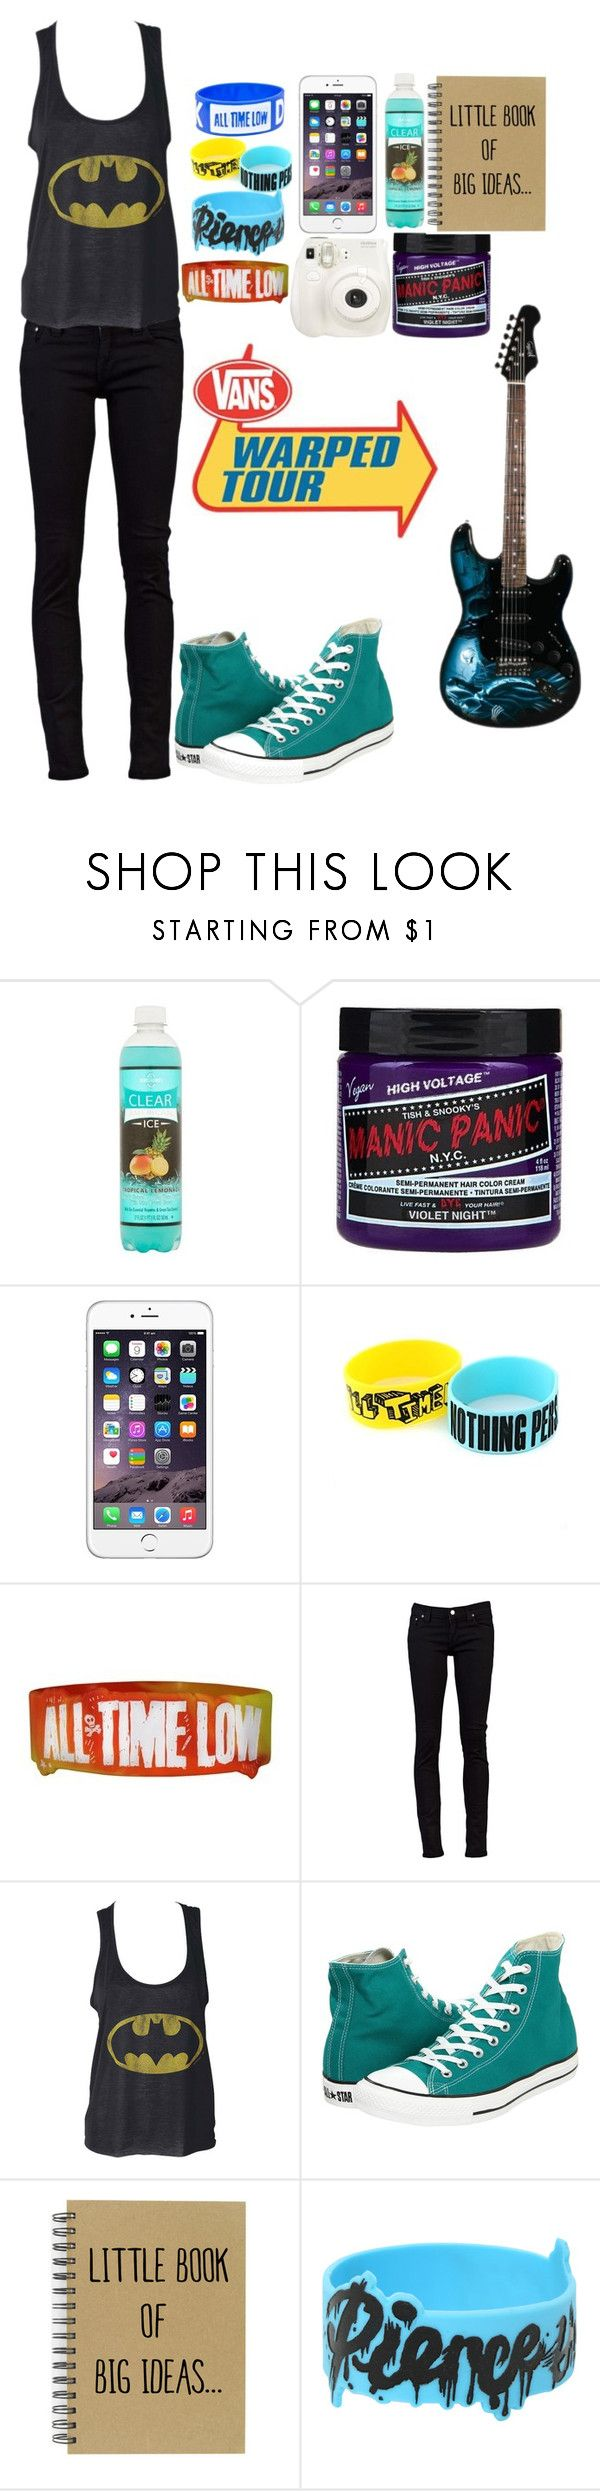 """~Performing At Warped Tour~"" by xxbandbabexx ❤ liked on Polyvore featuring Manic Panic NYC, Nudie Jeans Co., Converse, Fuji and Hot Topic"